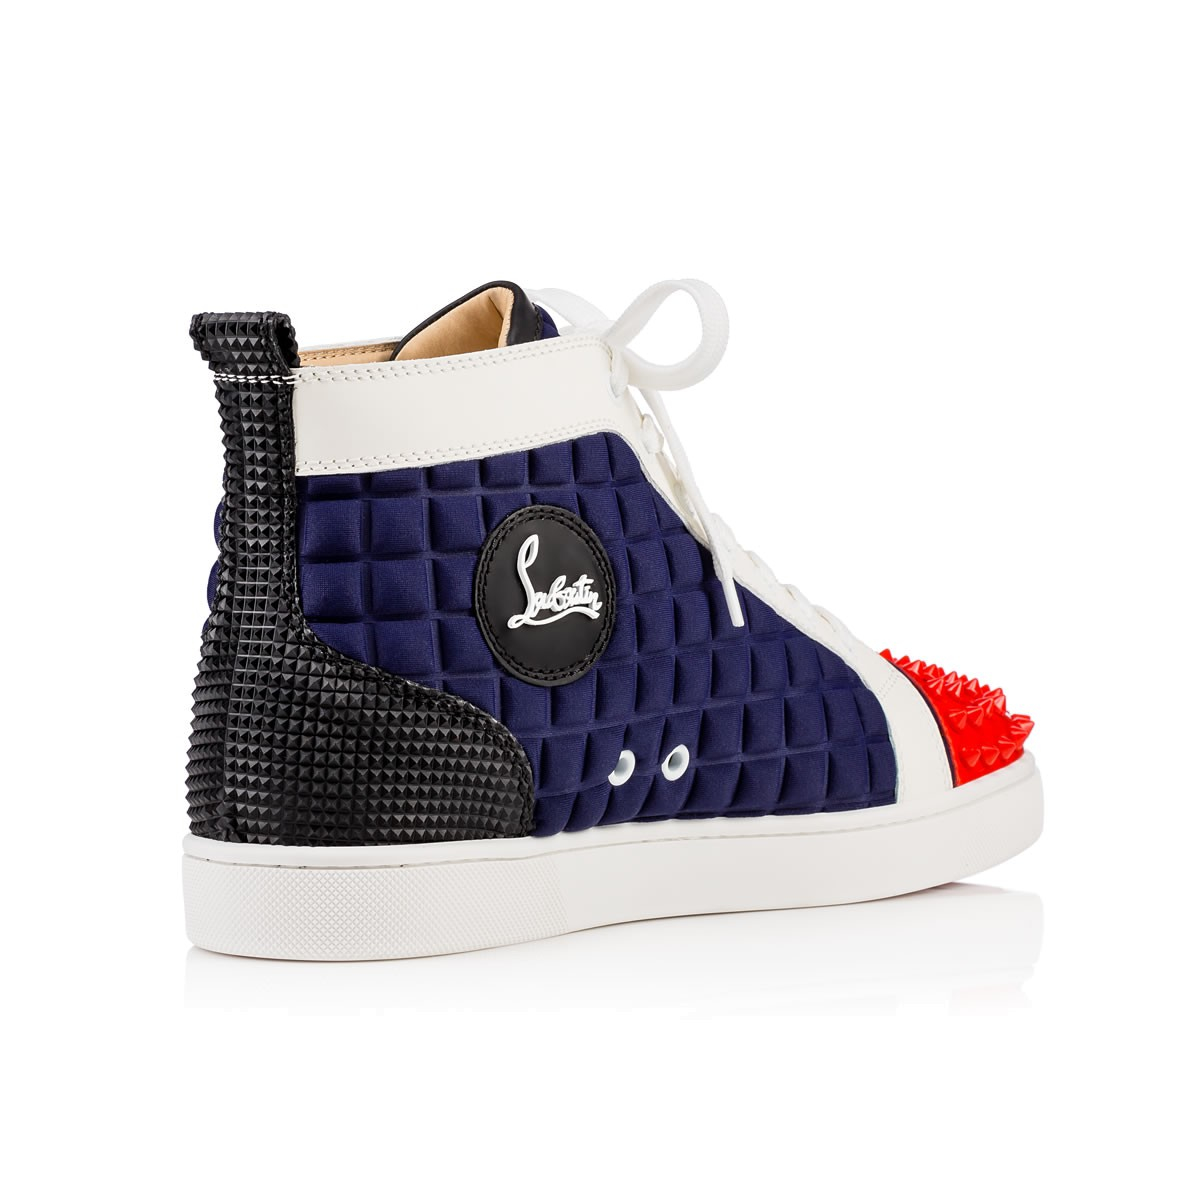 christian louboutin mænd sneakers